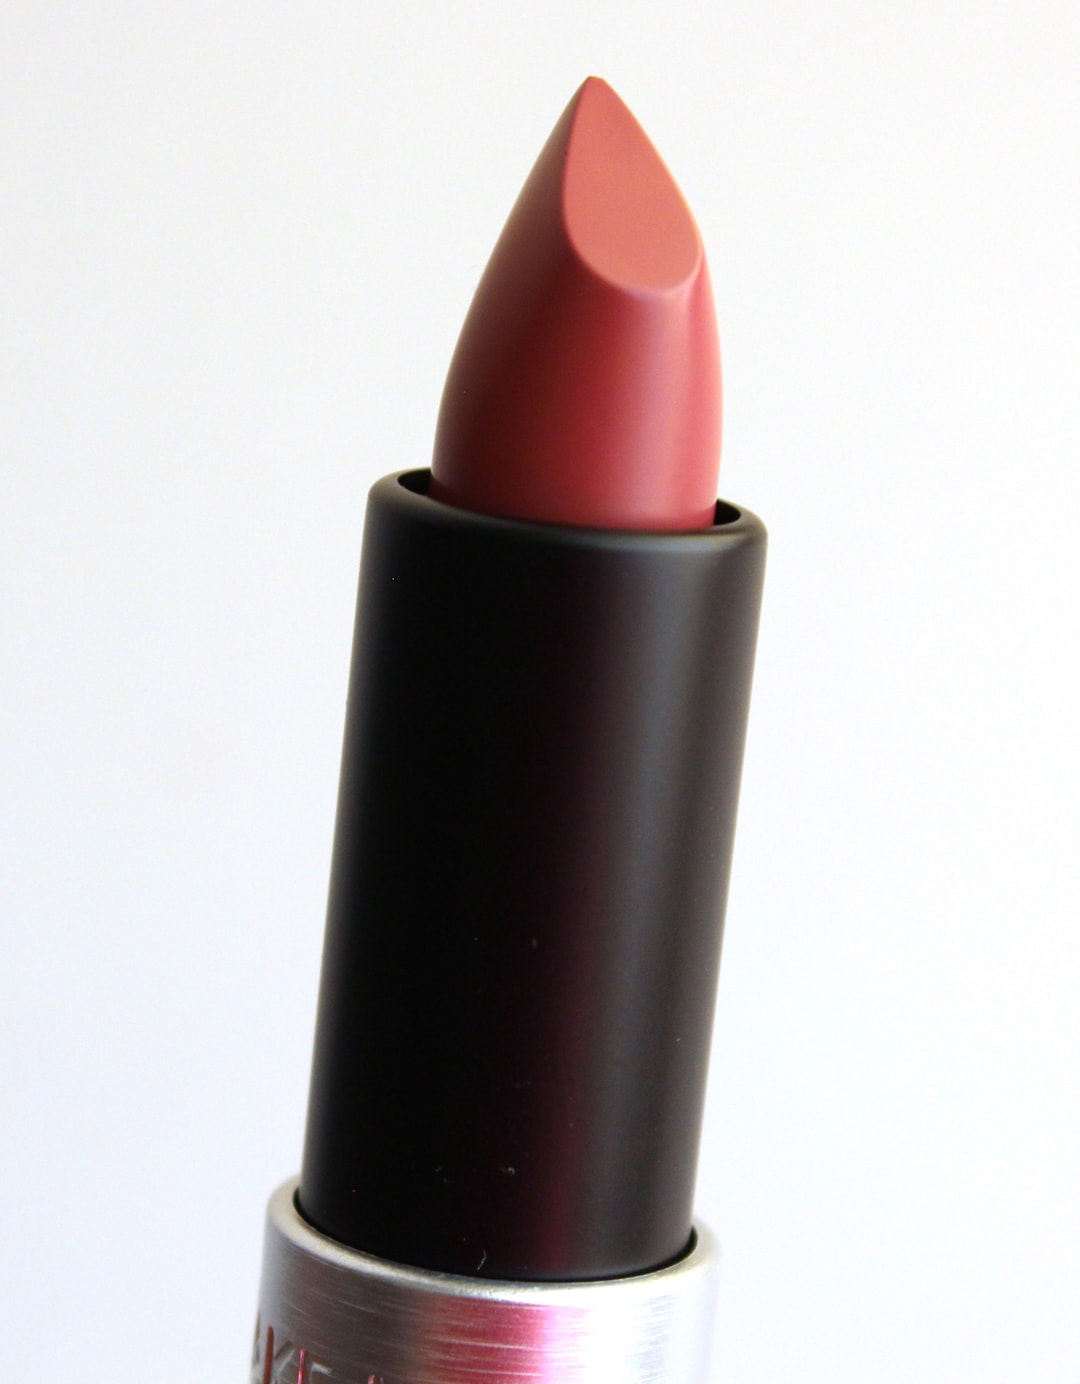 make up for ever artist rouge lipstick swatches modern